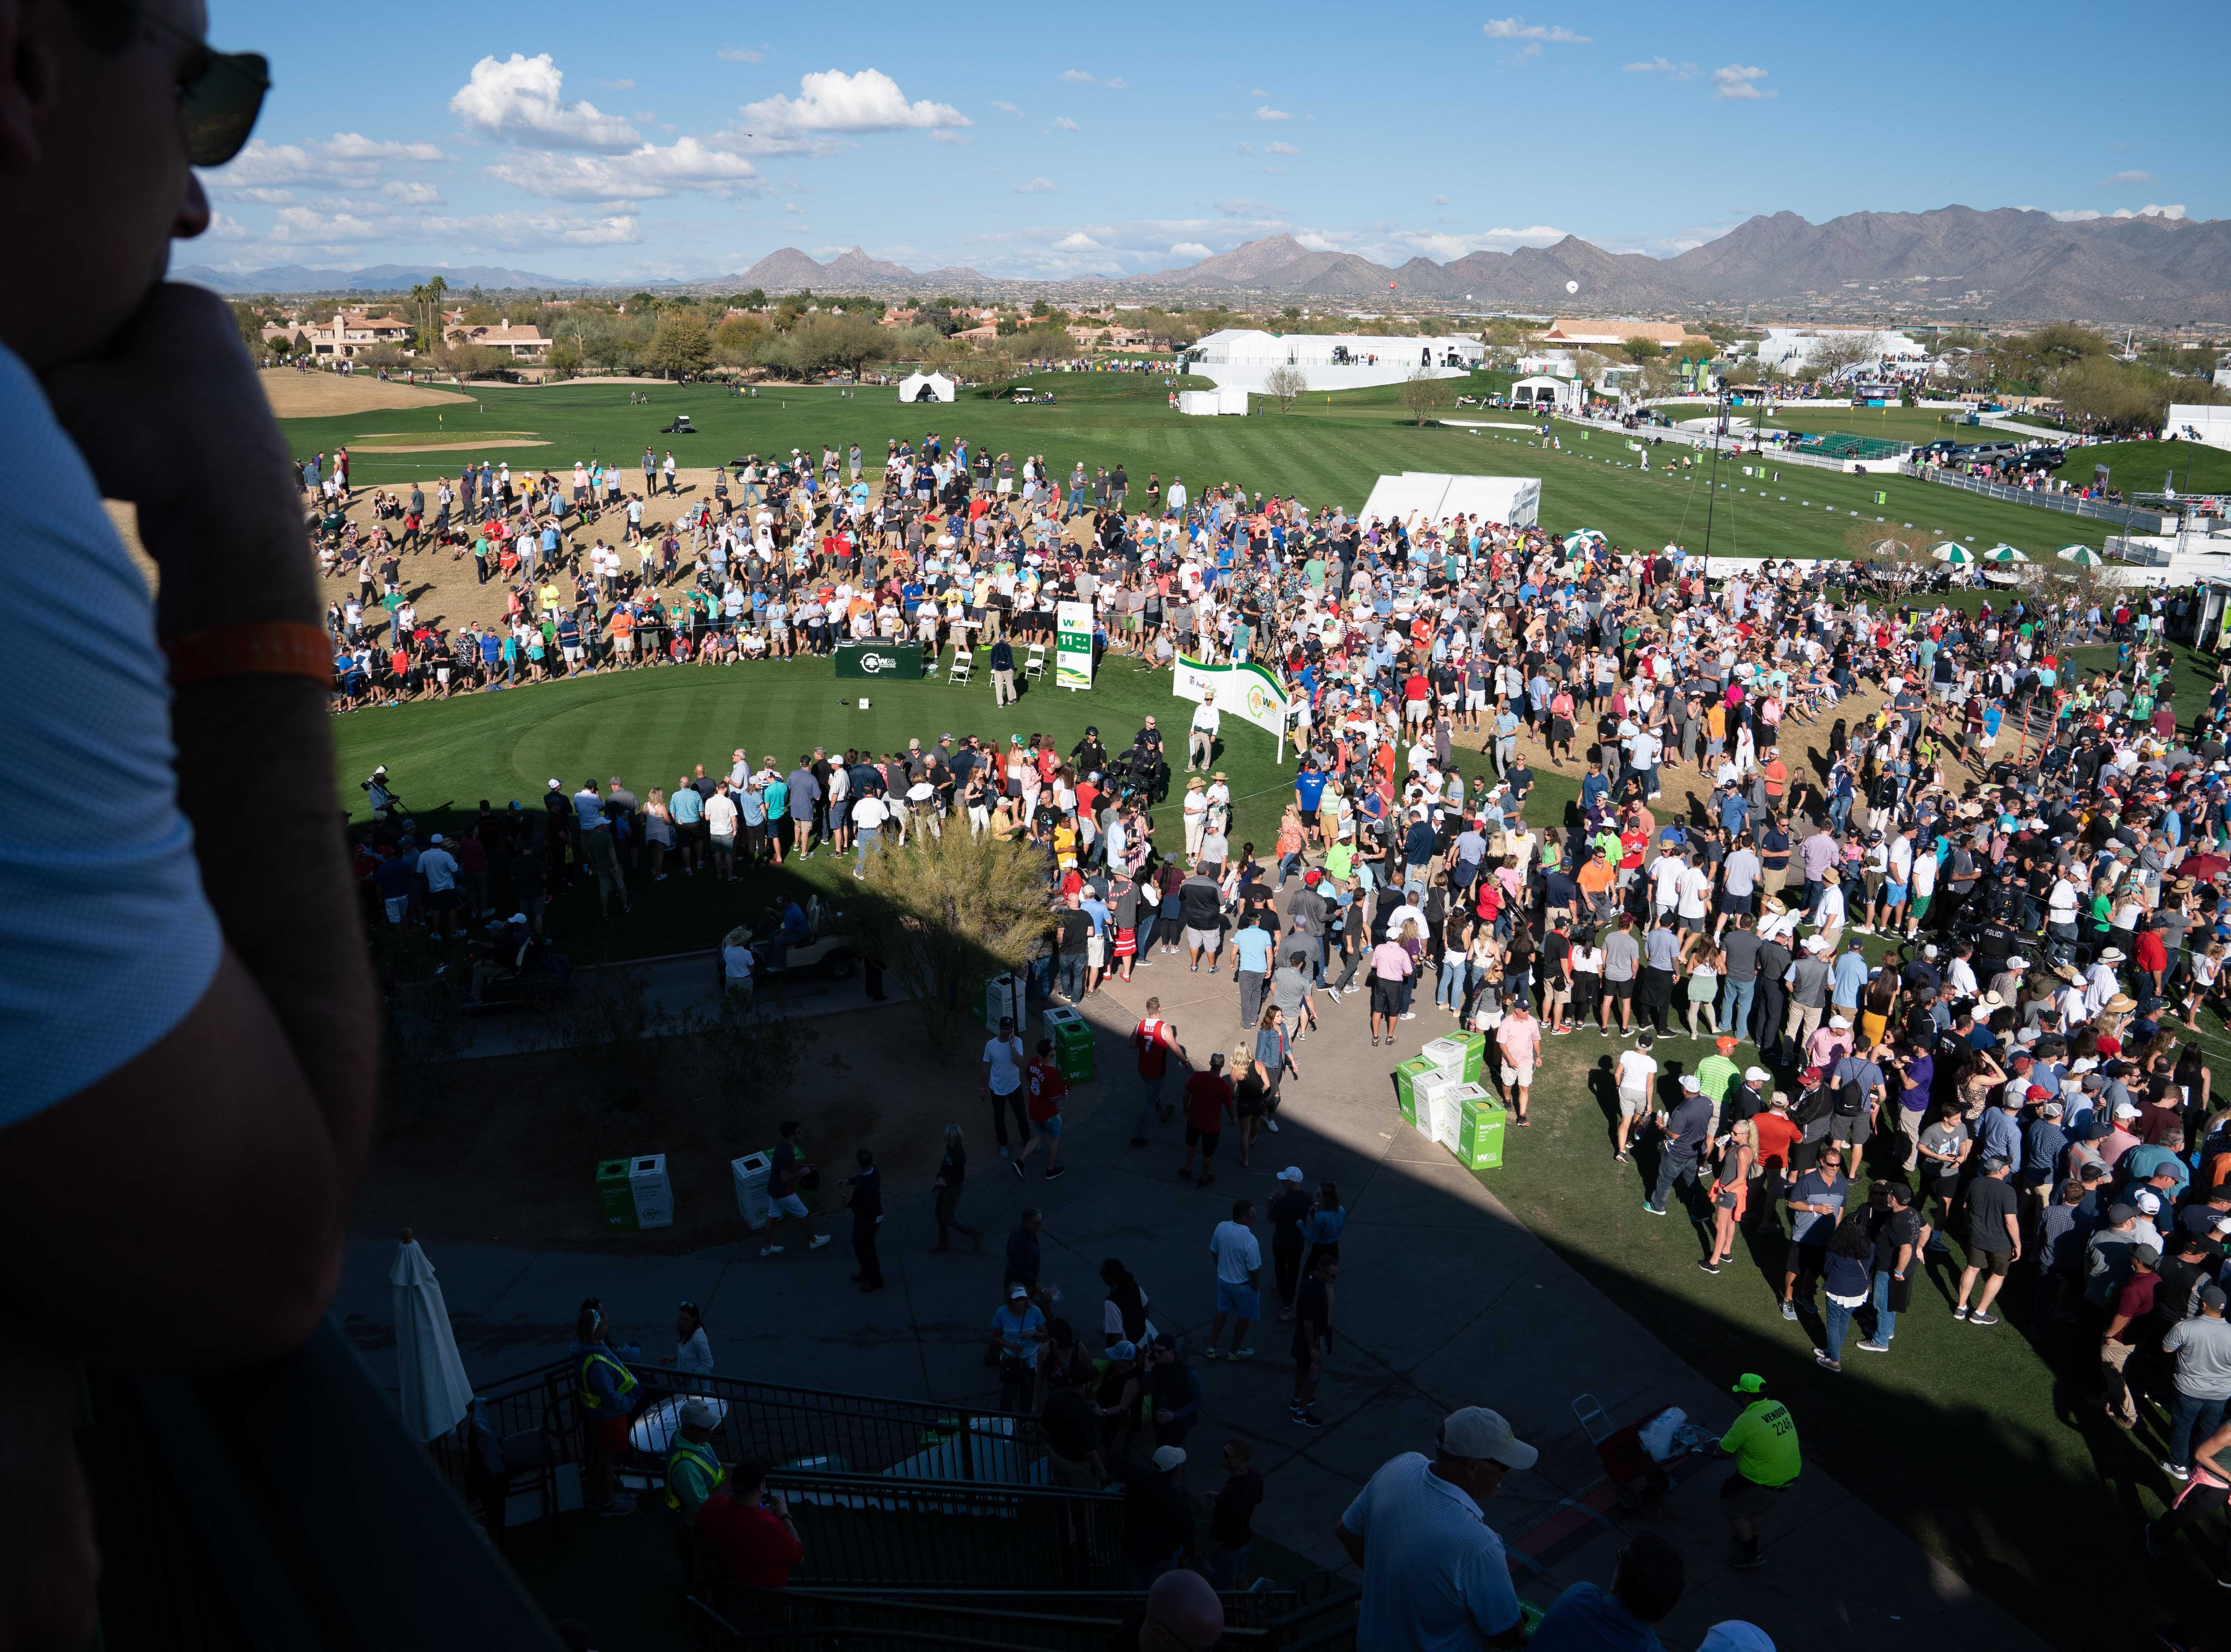 Fans watch the action at the 10th hole of the second round of the 2019 Waste Management Phoenix Open.